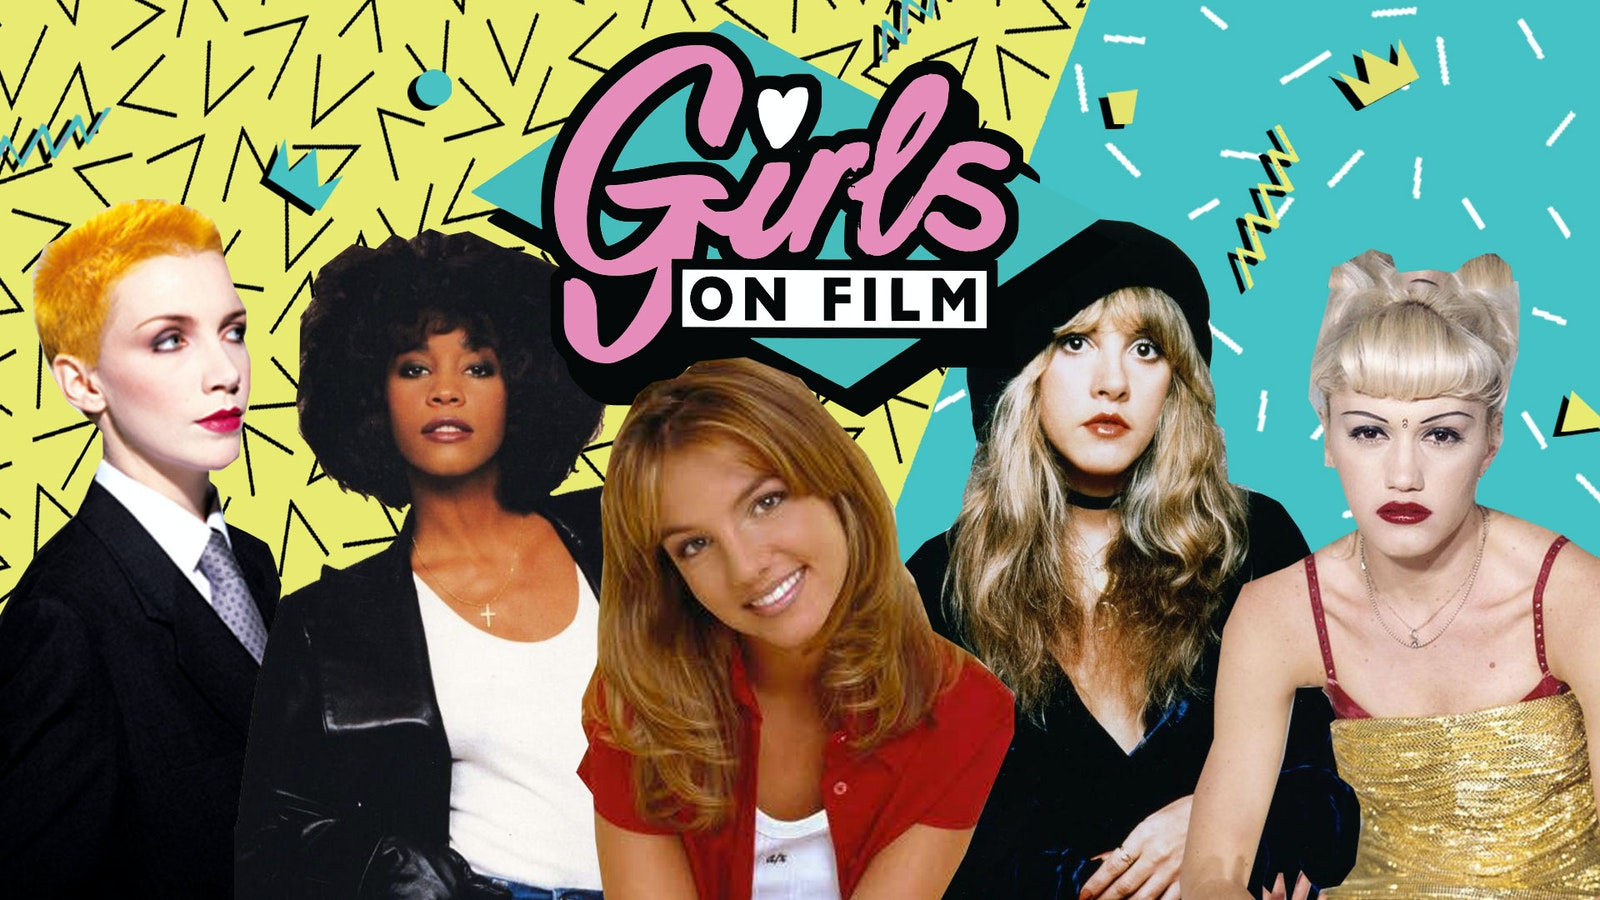 ALL NEW GIRLS ON FILM